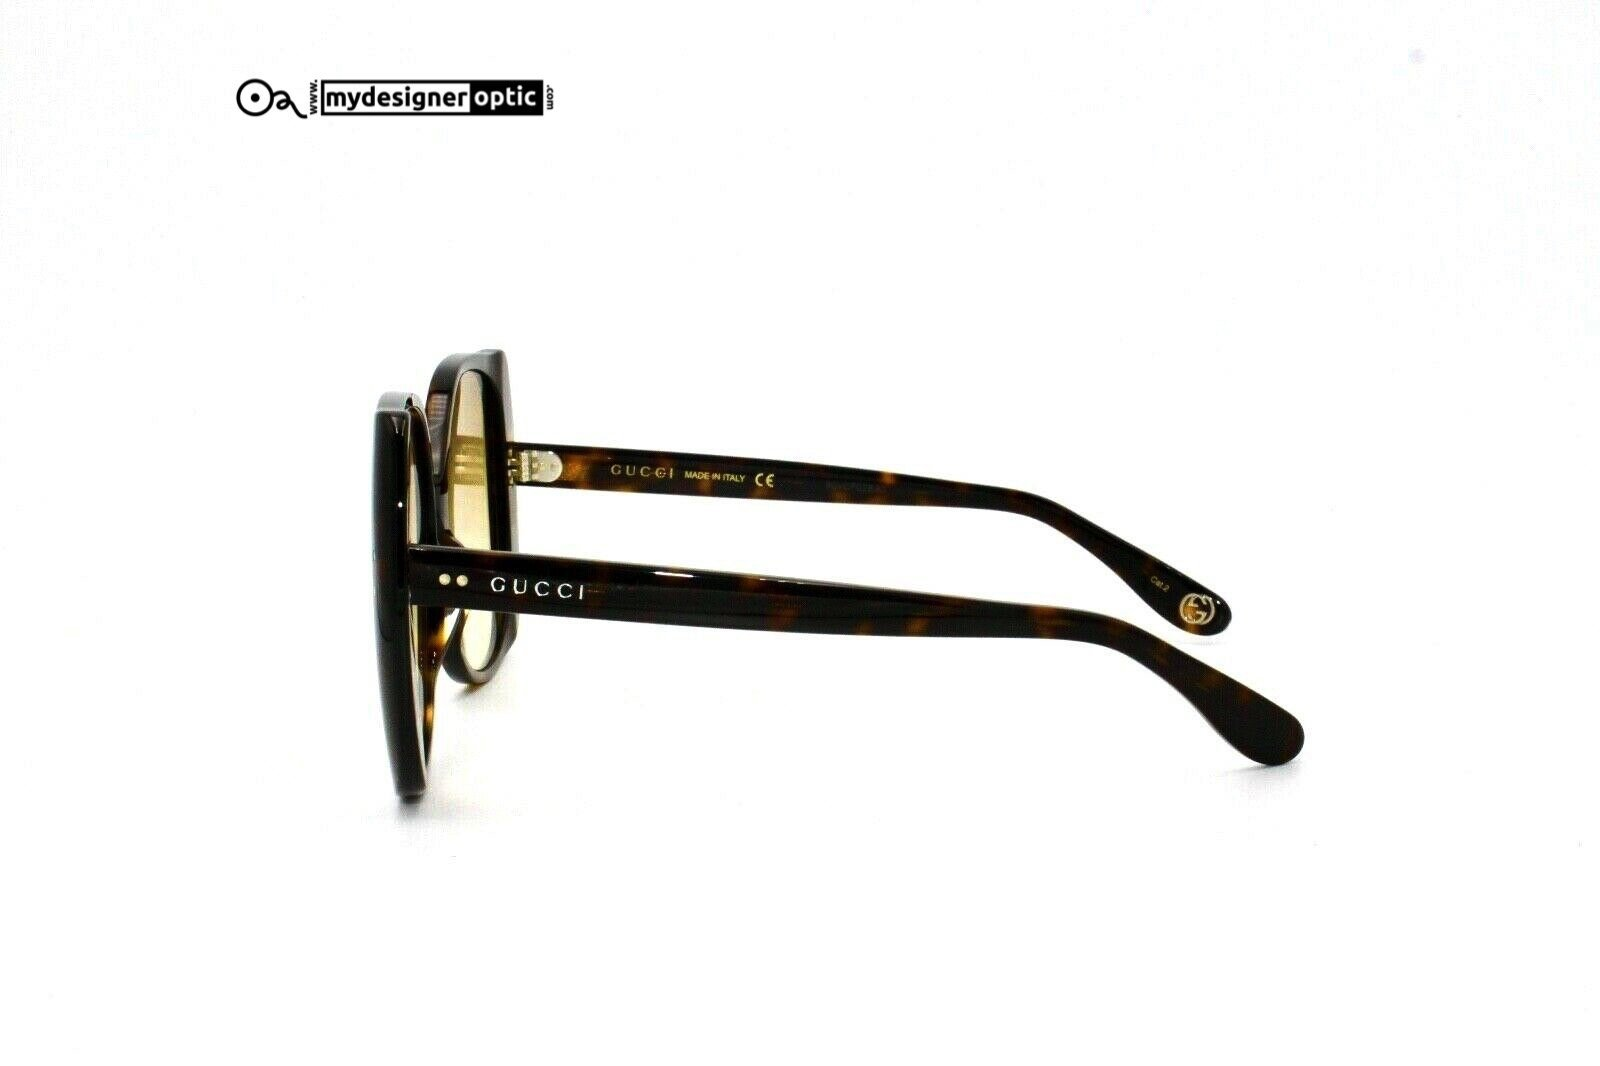 Gucci Sunglasses GG0472S 002 56-17-145 Made in Italy Cat.2 - Mydesigneroptic